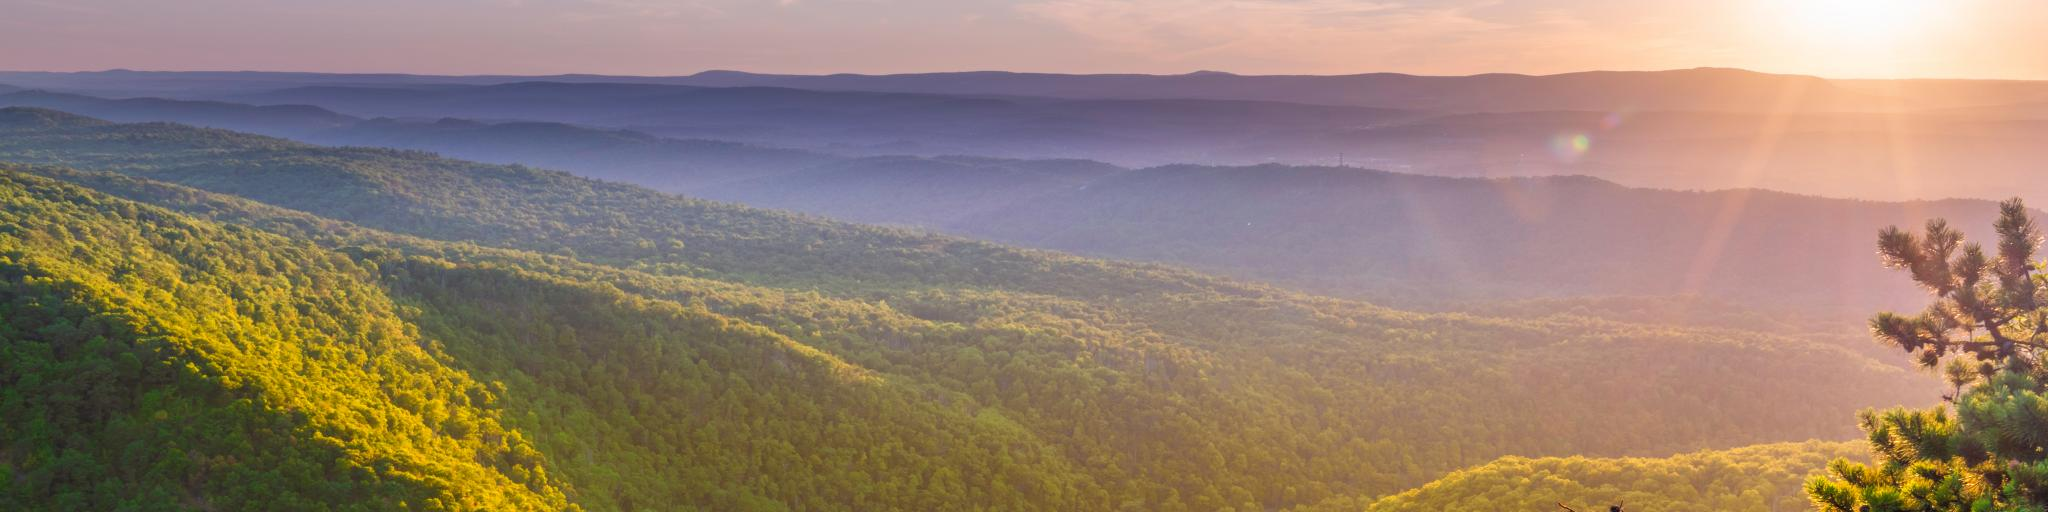 Delaware Water Gap Recreation Area viewed at sunset from Mount Tammany